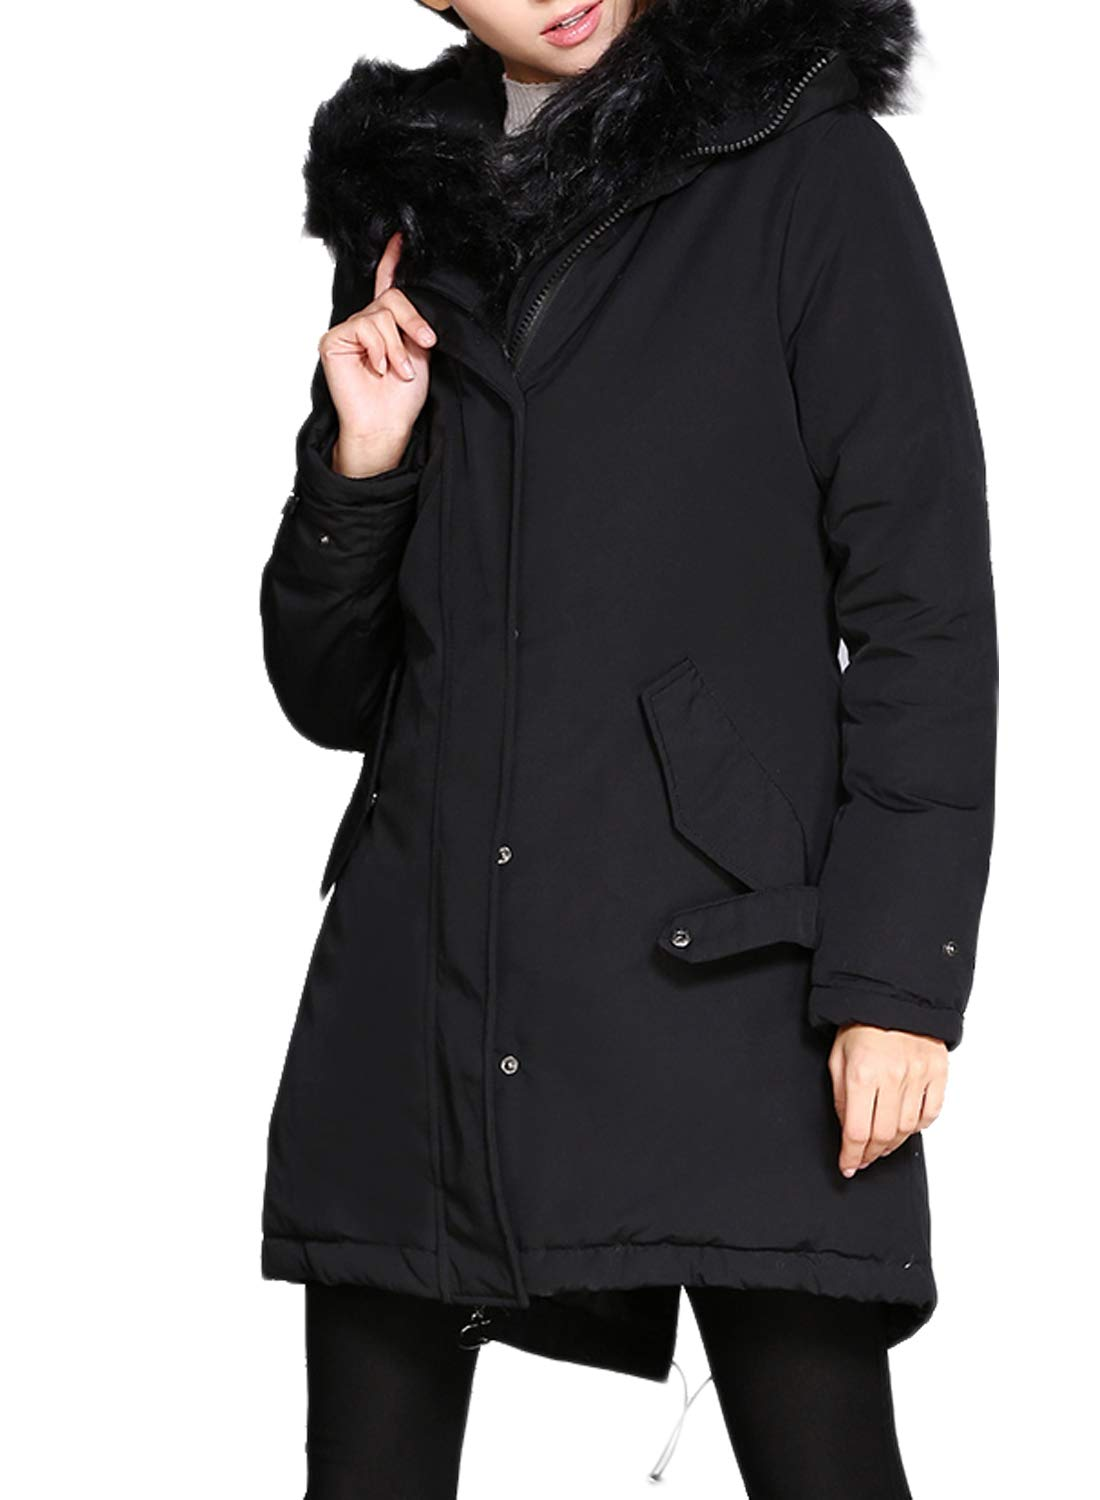 HOTAPEI Women's Fashion Winter Faux Fur Lined Hooded Parka Jacket Coat Hood Outwear Winter Parka Storm Coats Open Front Heavy Down Parka Black L